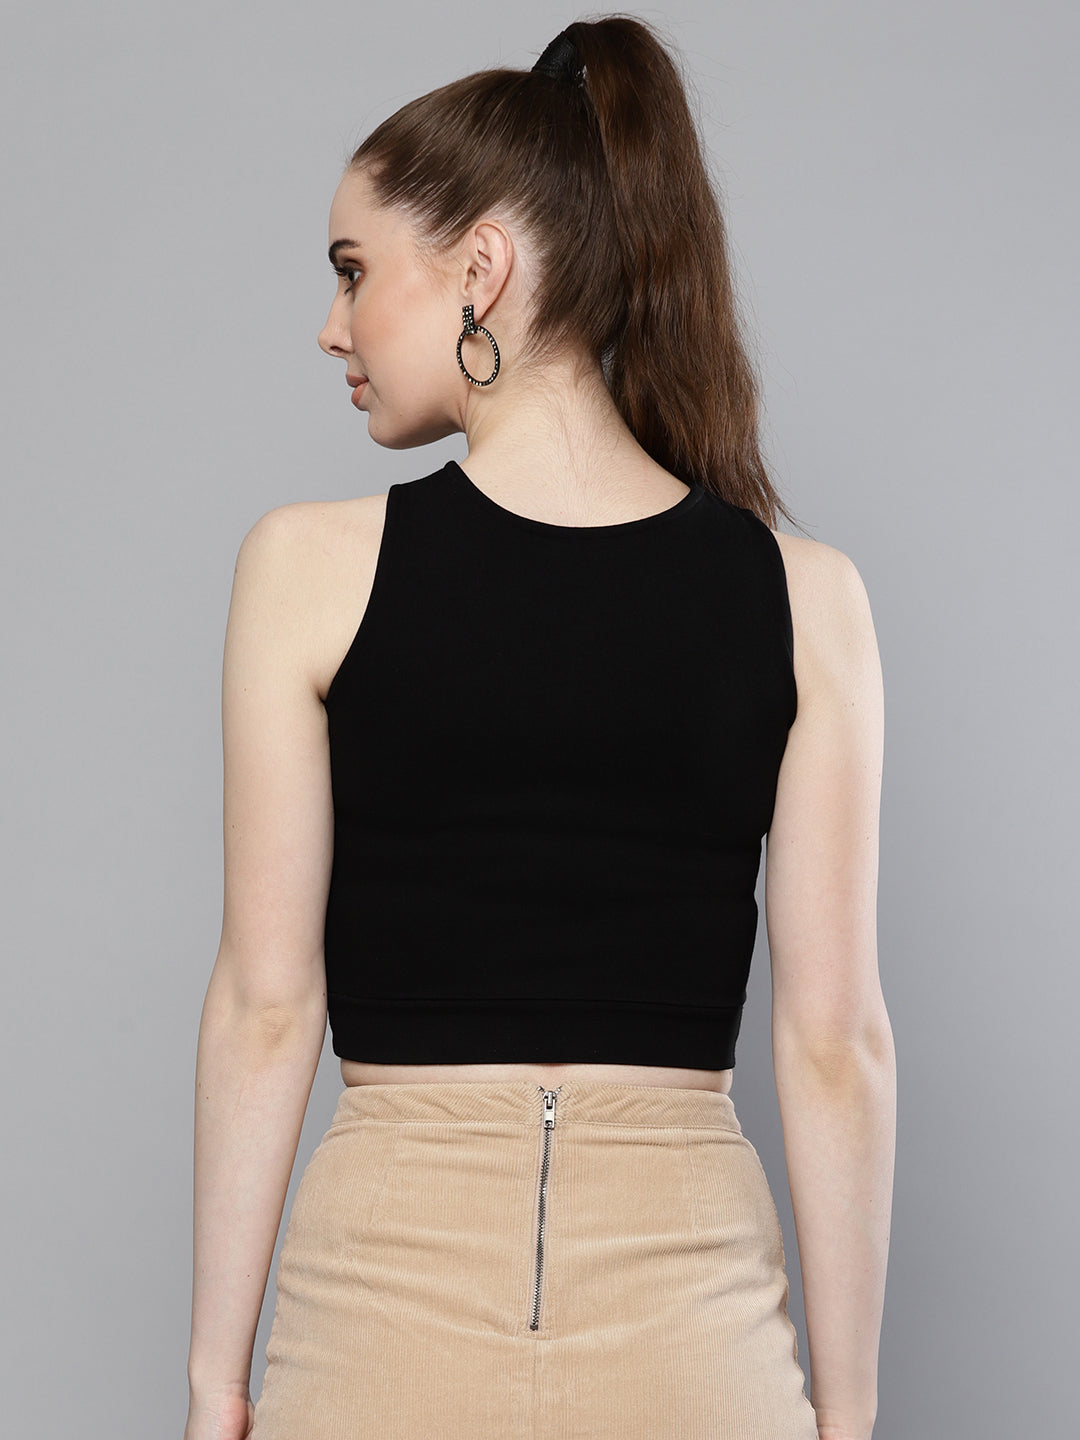 Solid Black Party Top